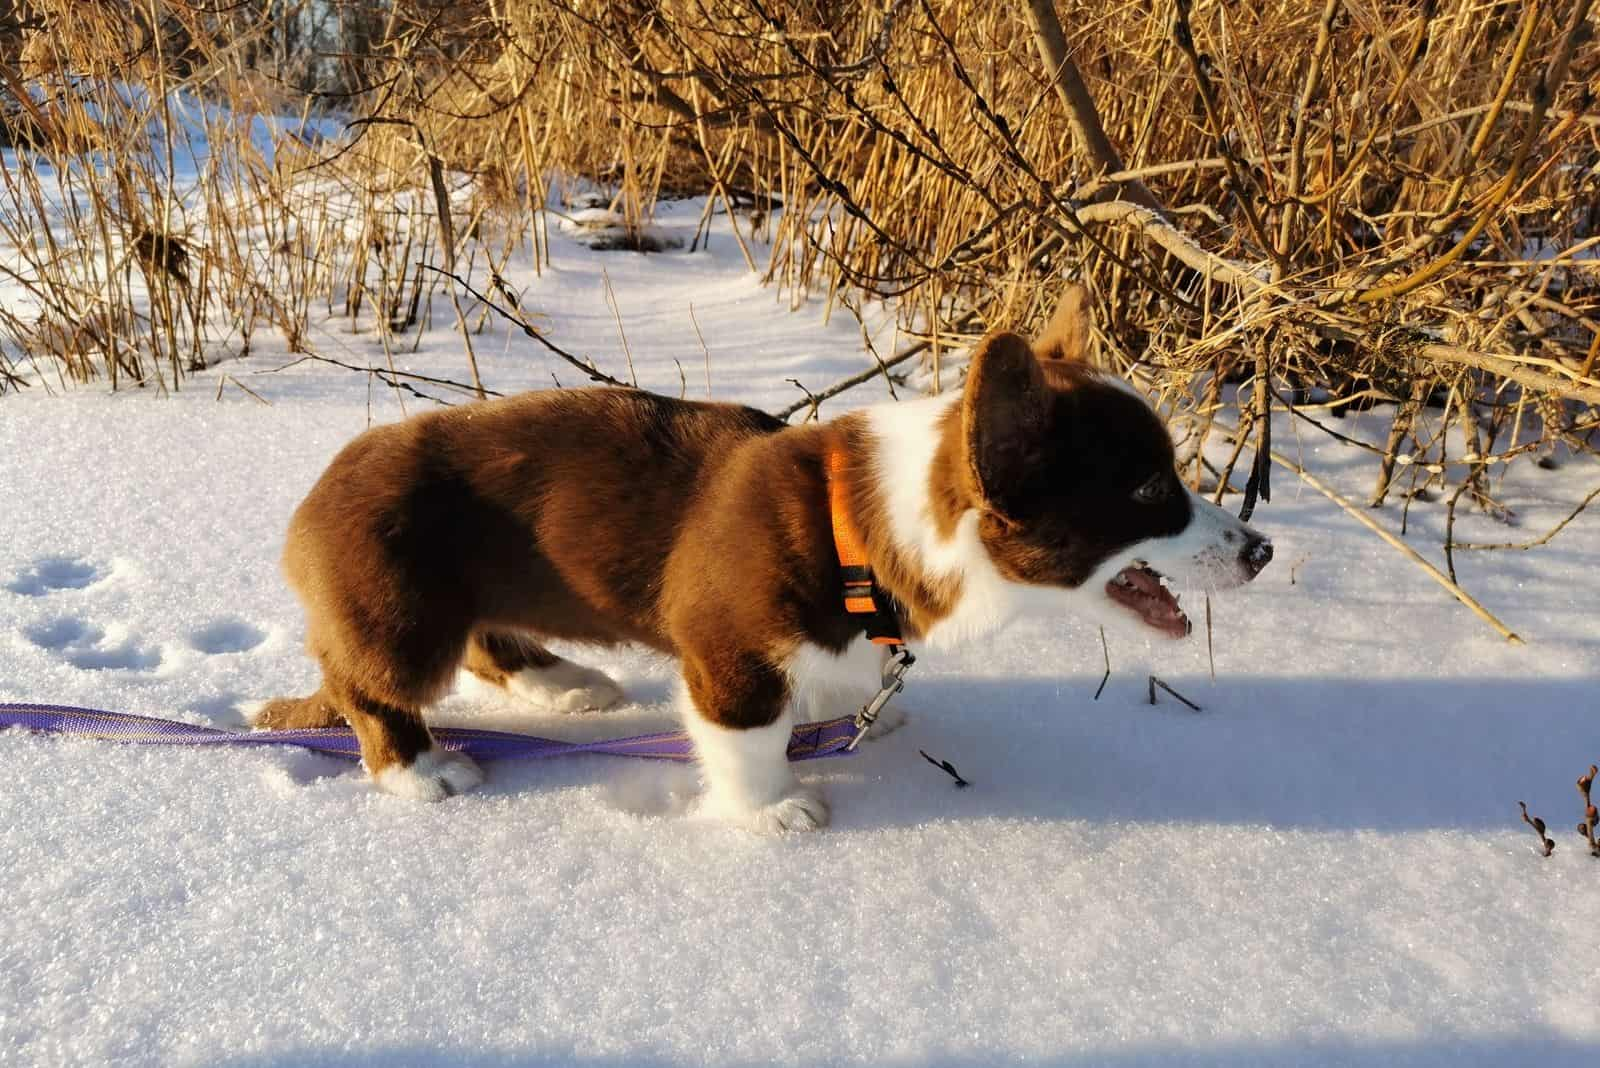 2.5 month old female puppy. Unformat - brown color with white paws and white breast